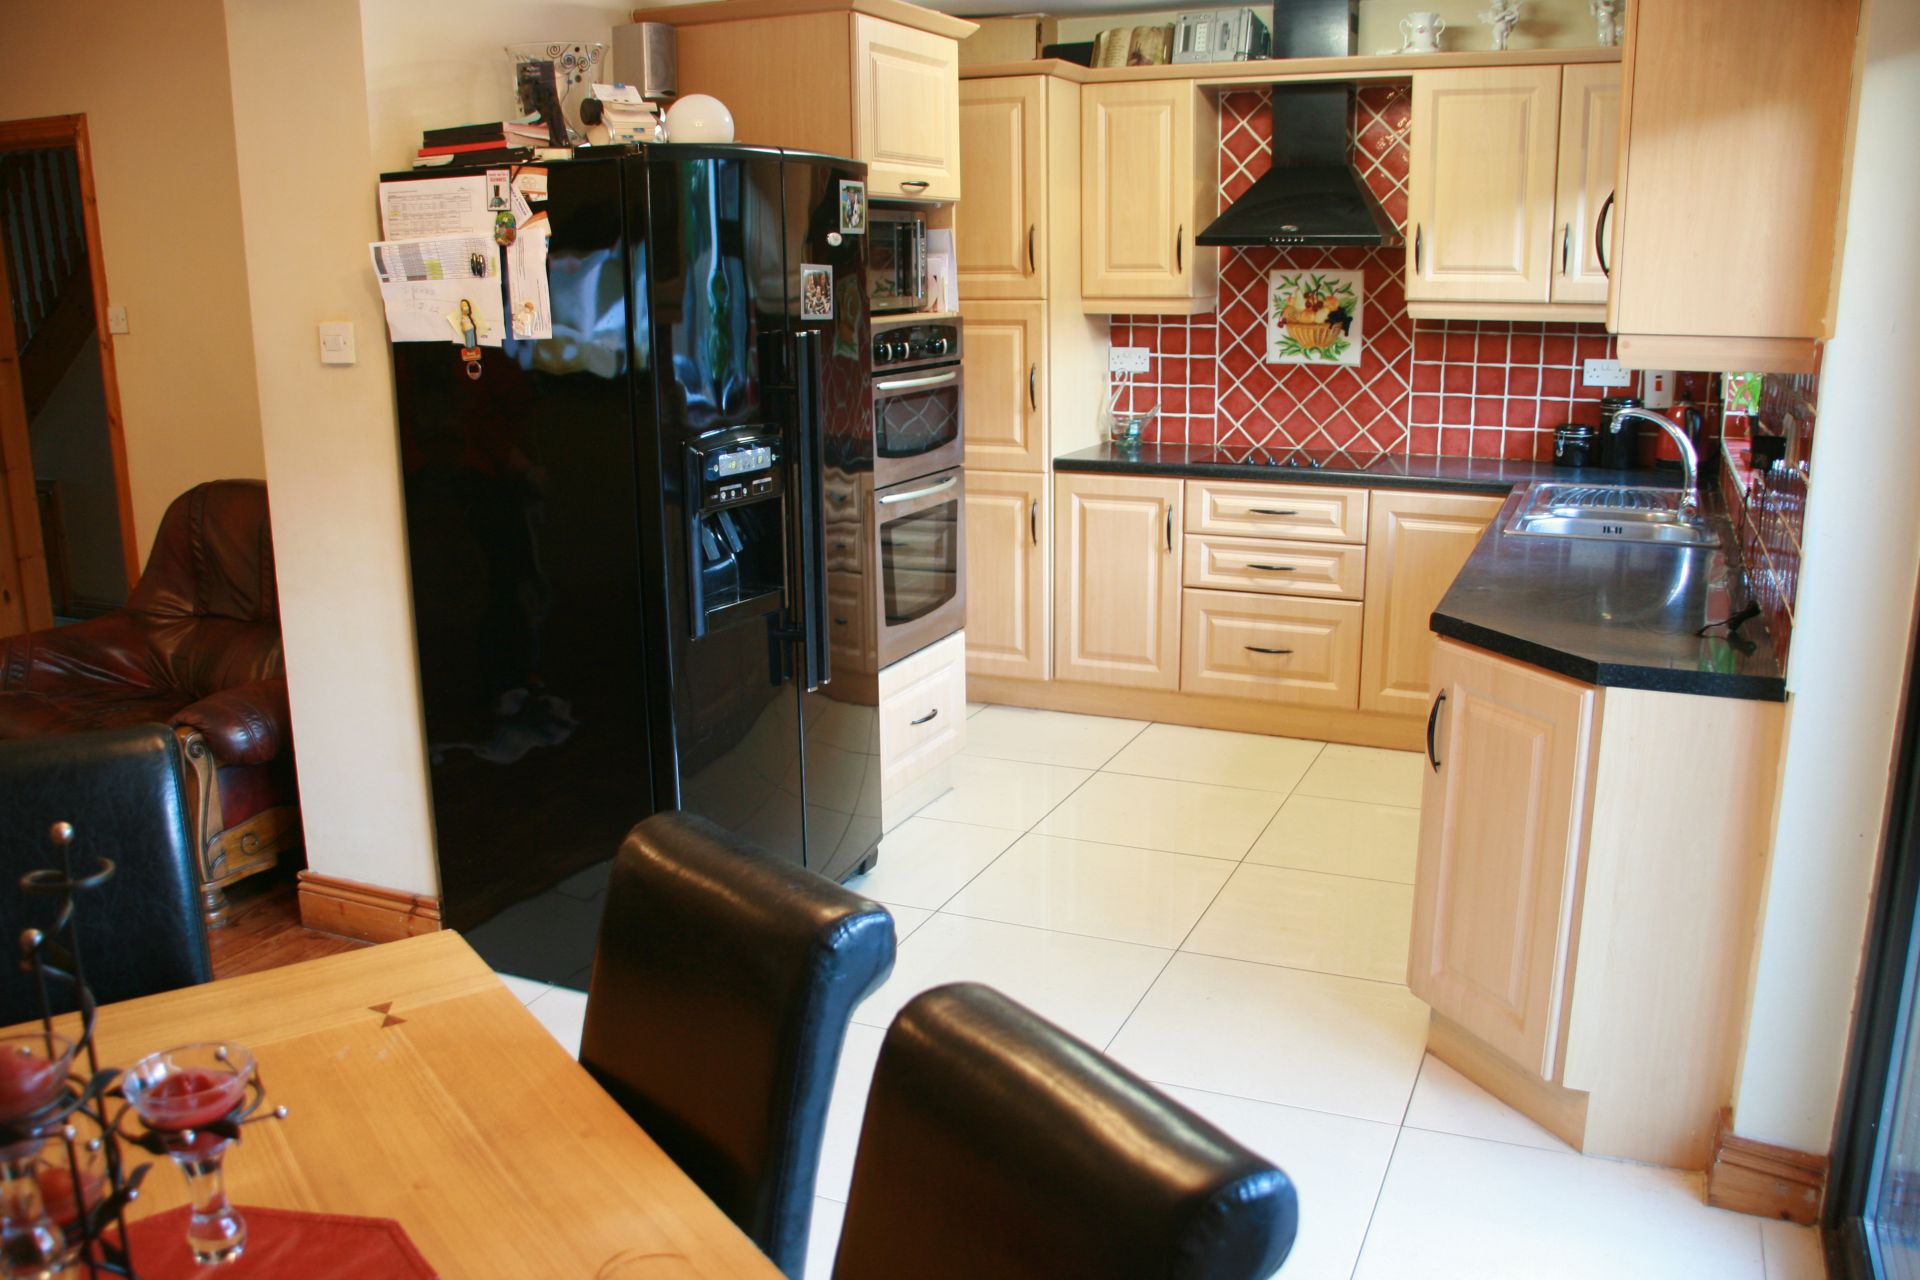 Fantastic family home located in claddagh galway home exchange solutioingenieria Choice Image